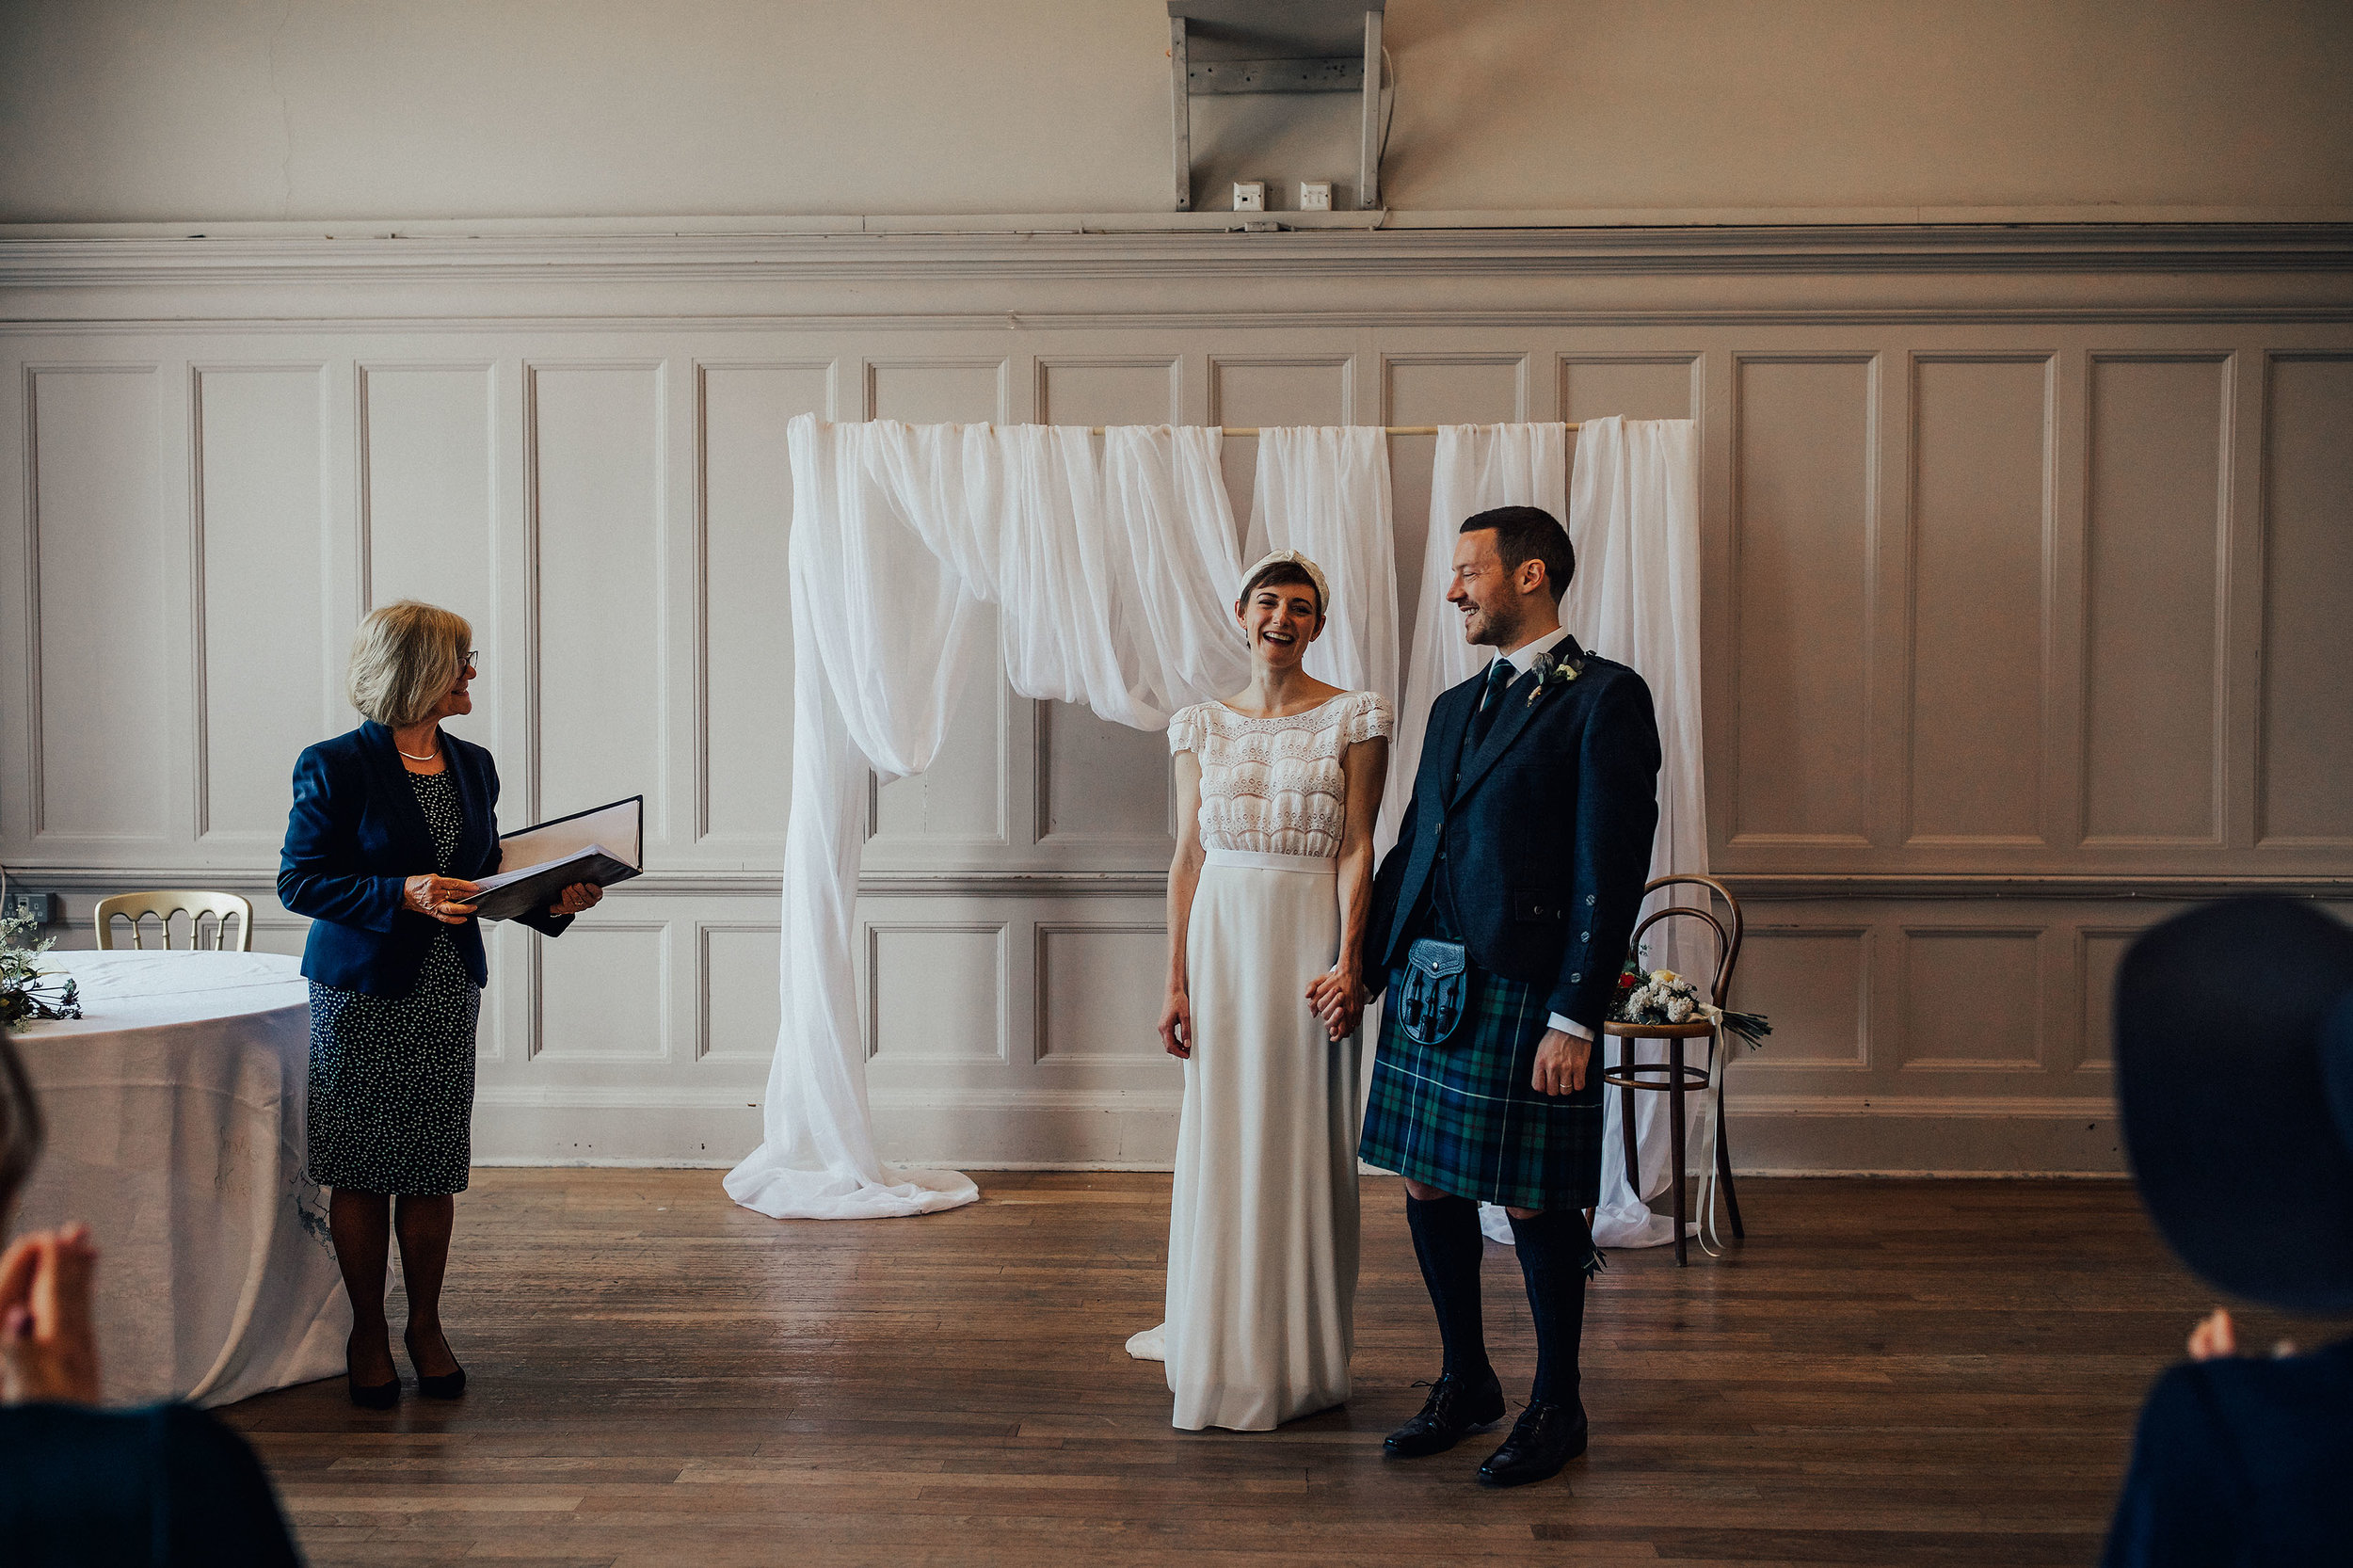 TIMBERYARD_EDINBURGH_WEDDING_PJ_PHILLIPS_PHOTOGRAPHY_82.jpg